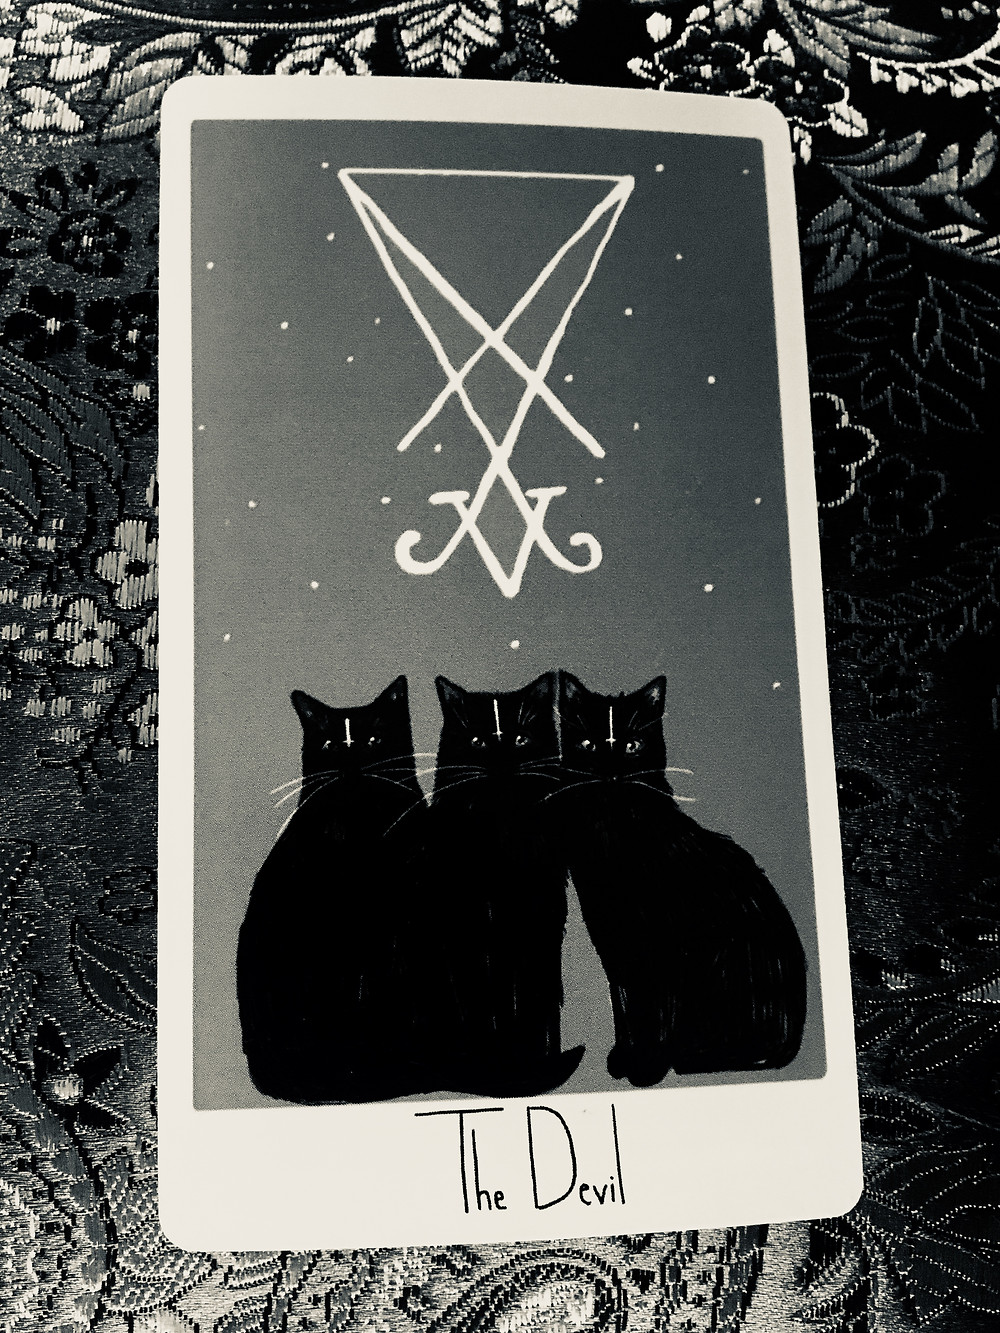 What the Cards Mean: The Devil